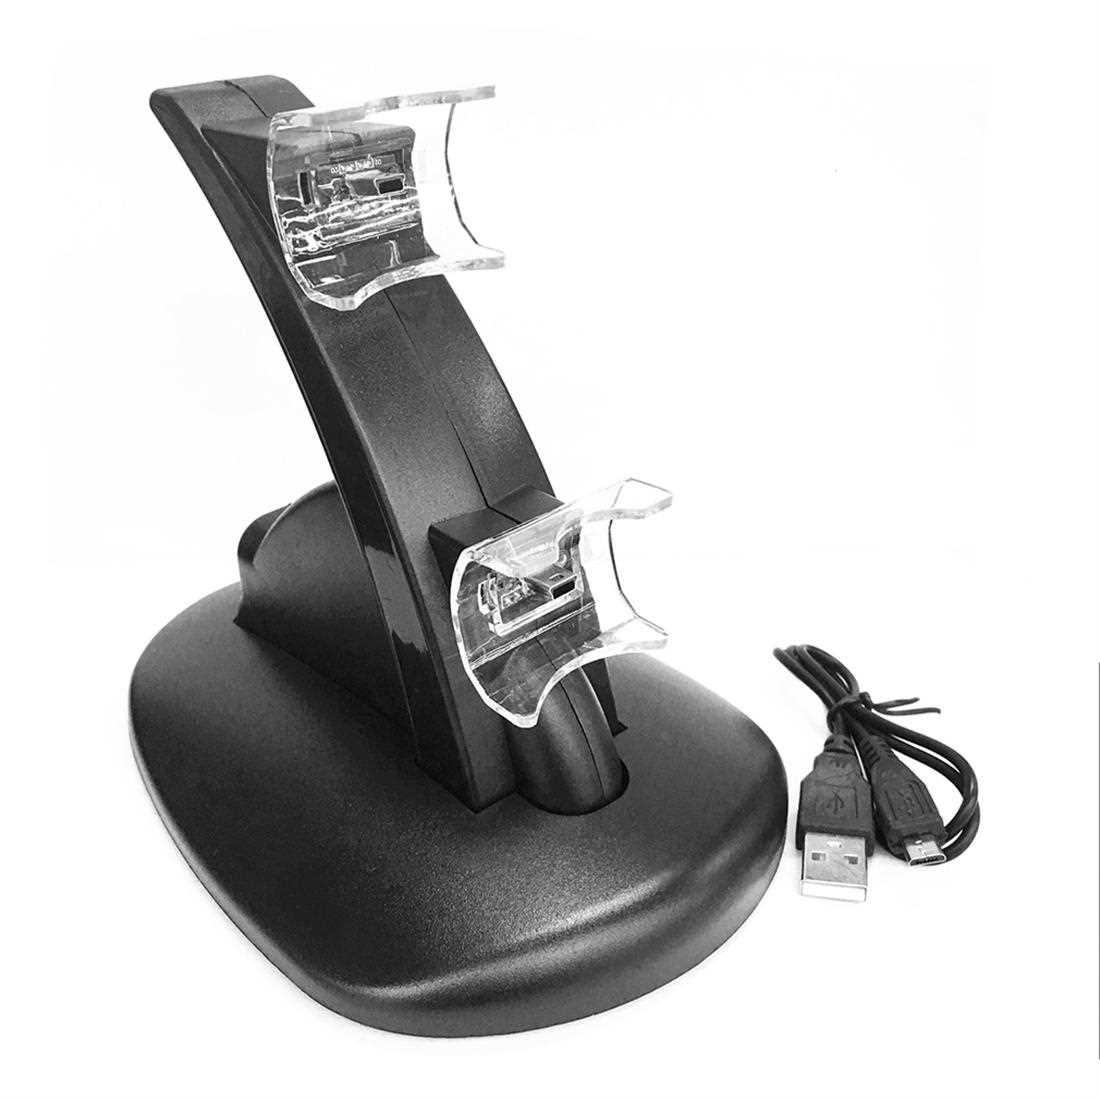 Black LED Light Quick Dual USB Charging Dock Stand Charger For PlayStation 3 (Black)